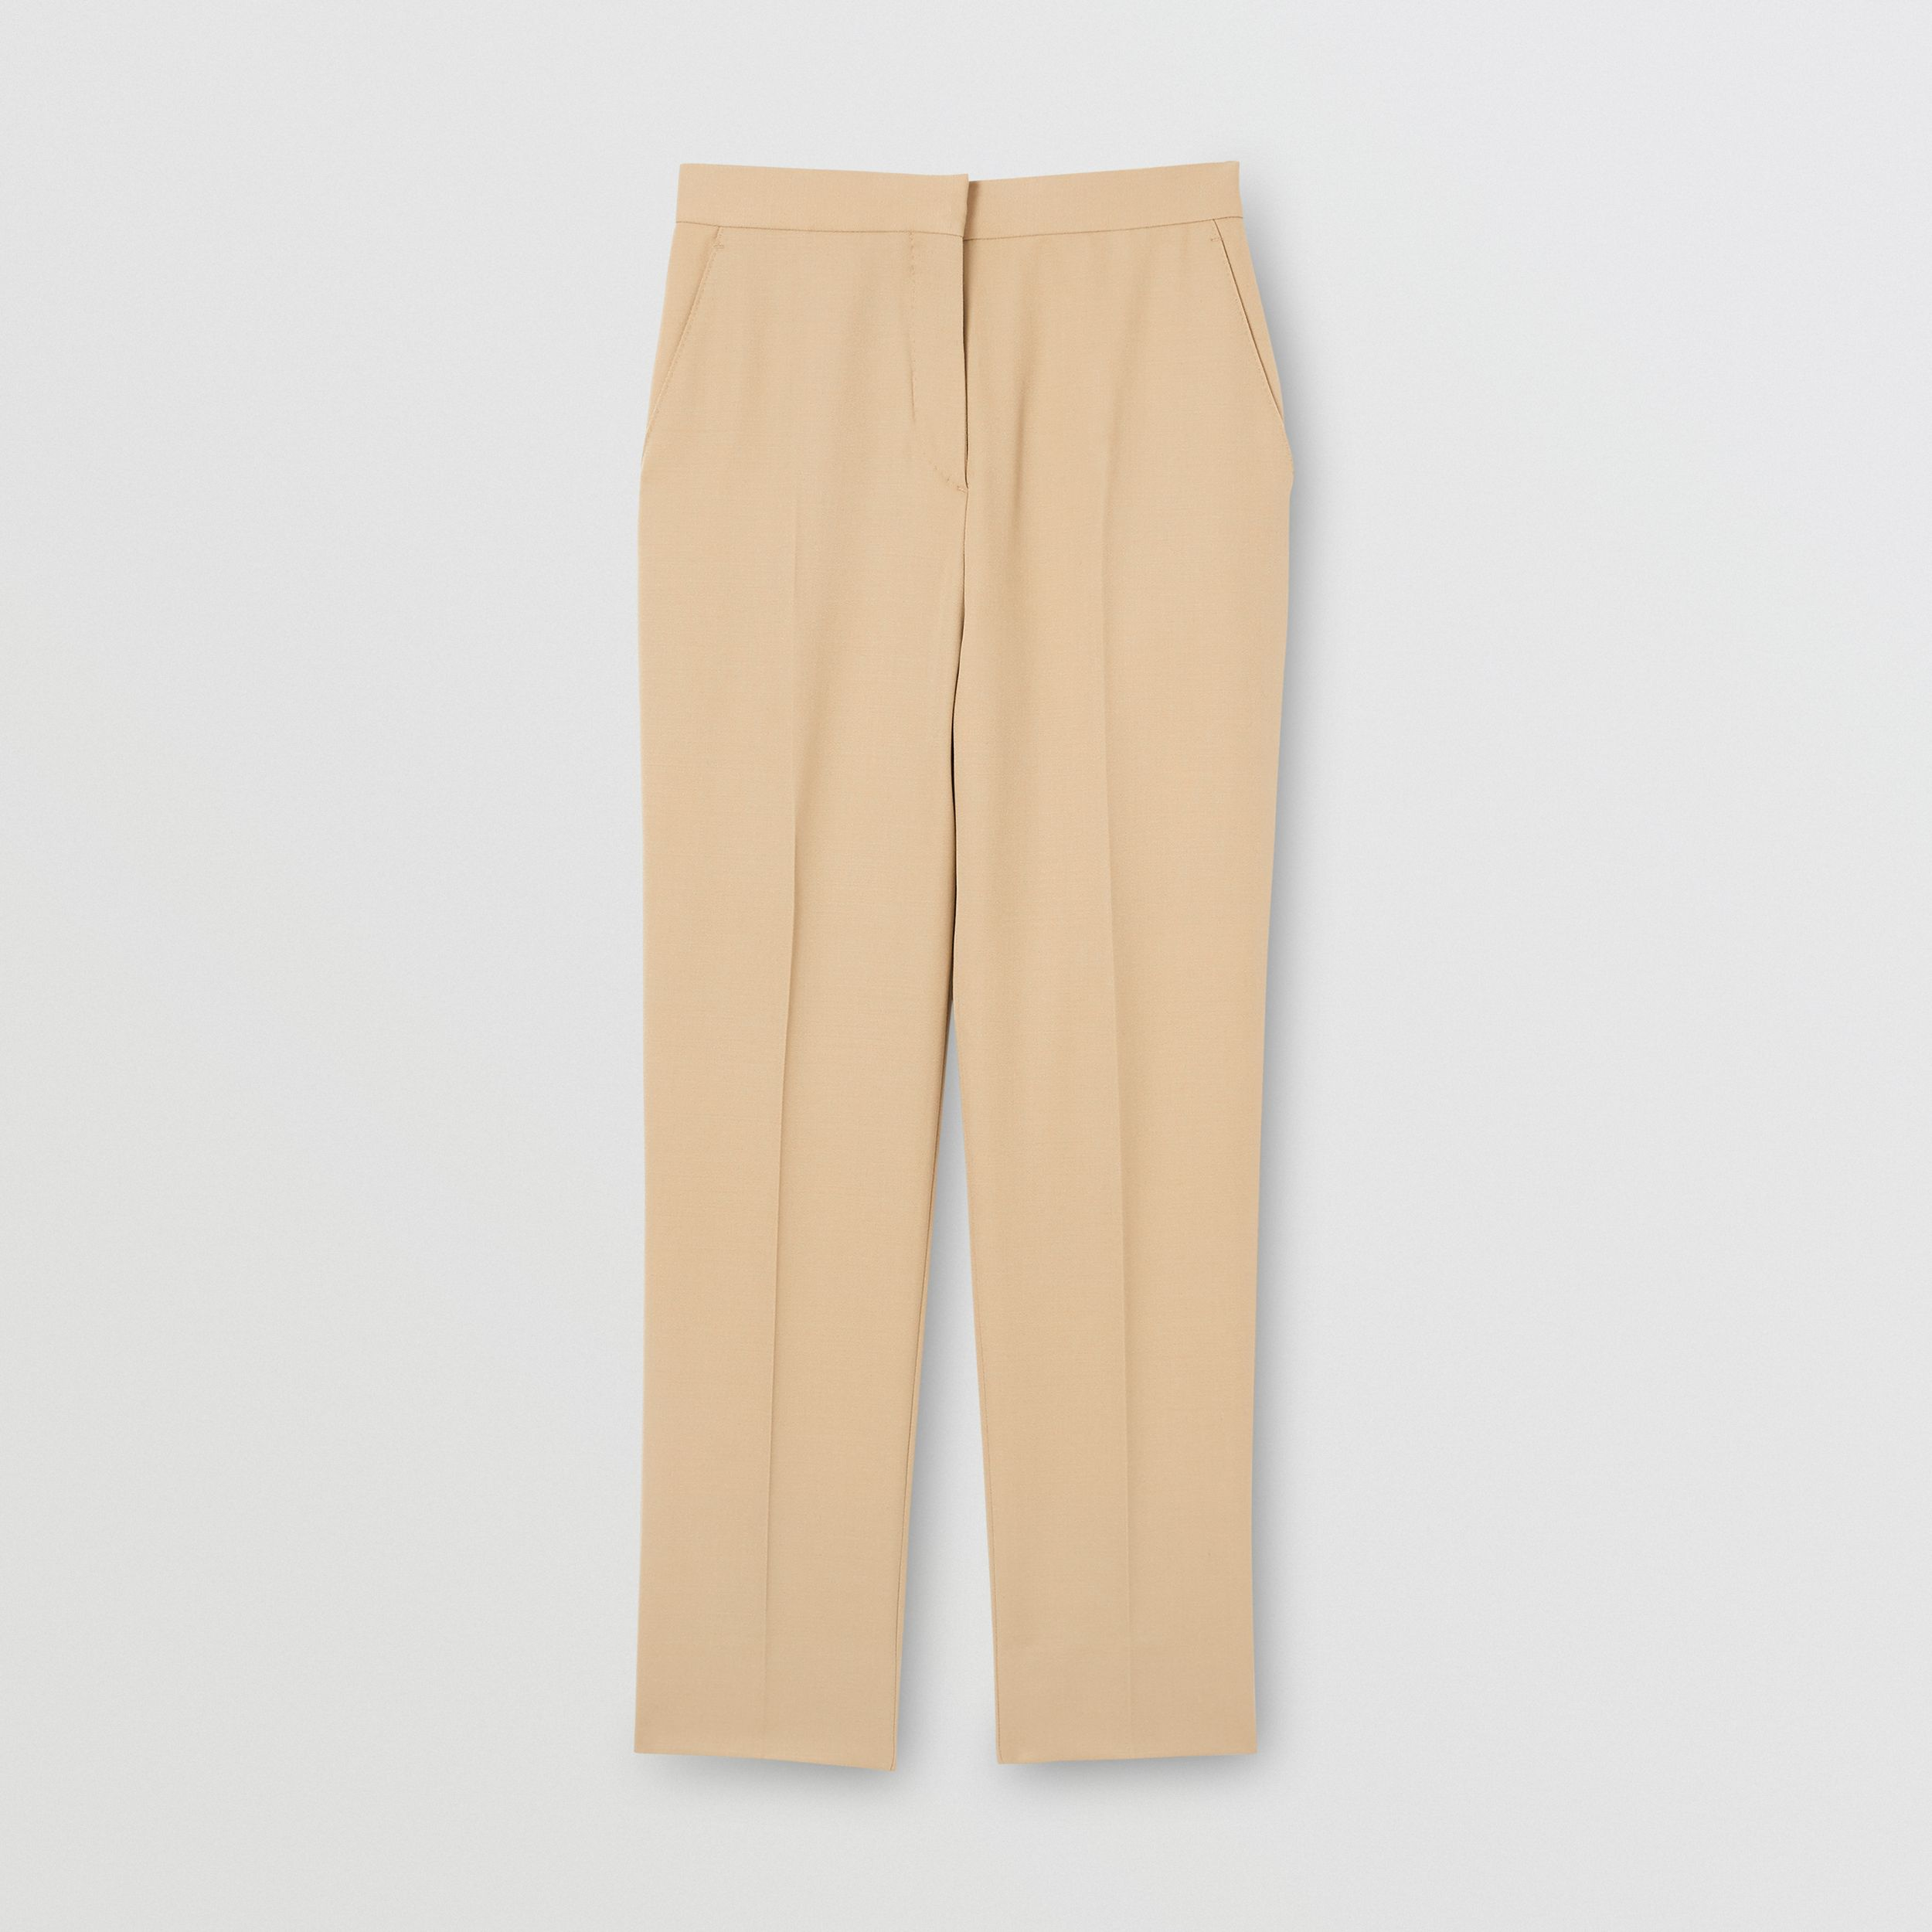 Wool Tailored Trousers in Honey - Women | Burberry - 4